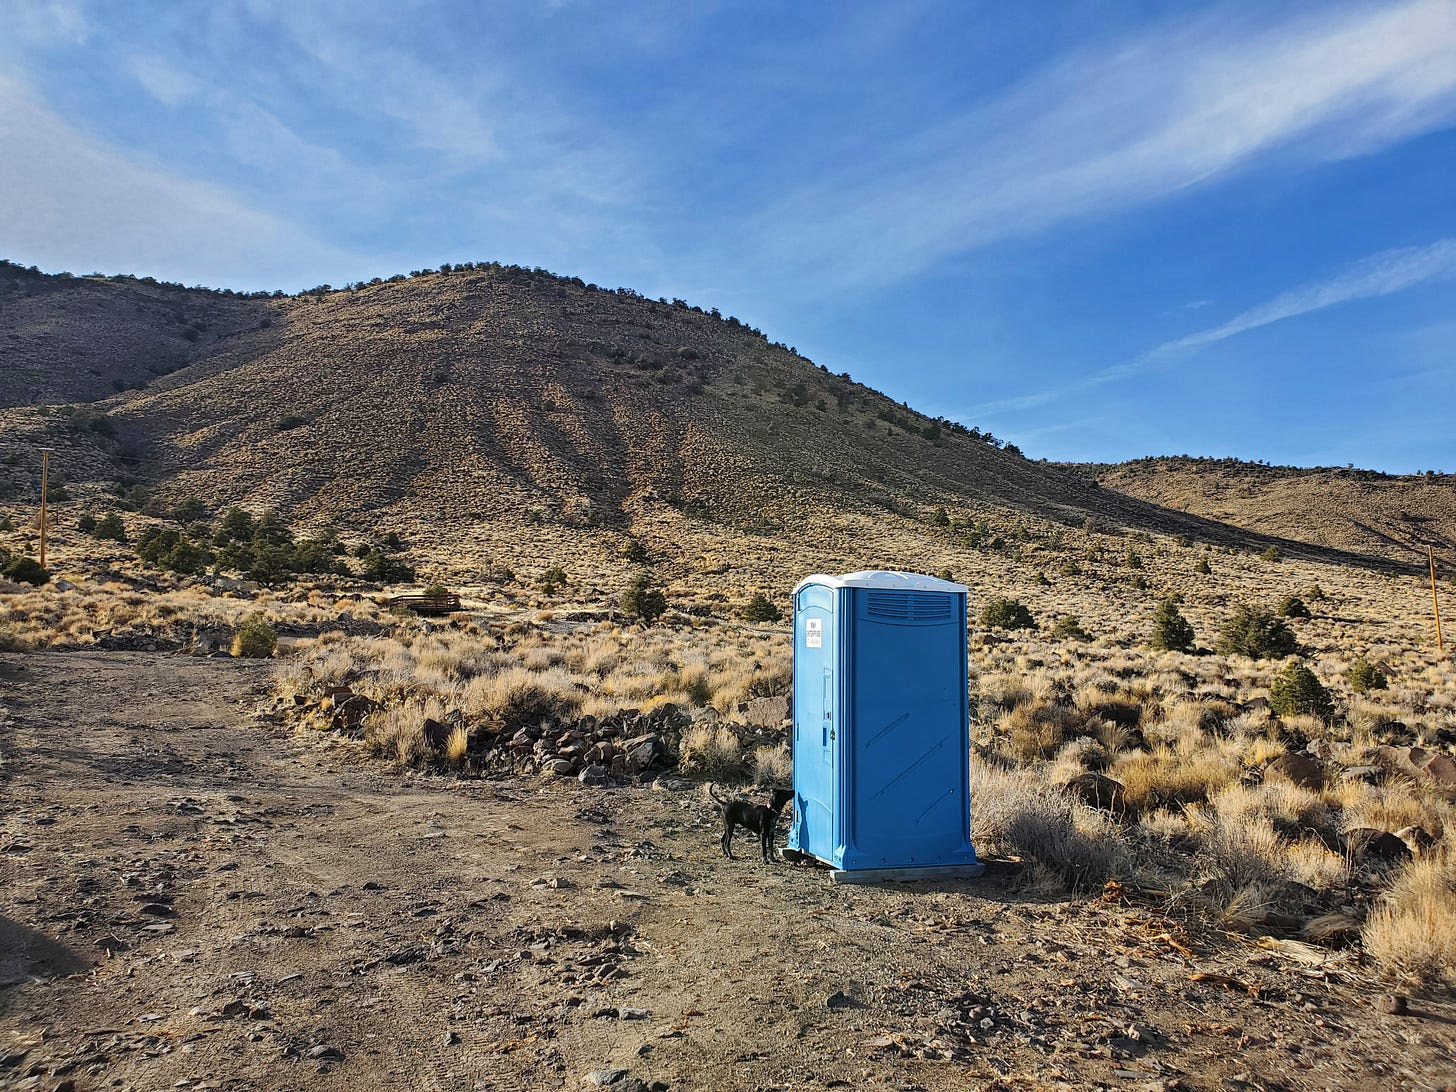 A blue porta potty on a dirt road with a black puppy right outside the door.